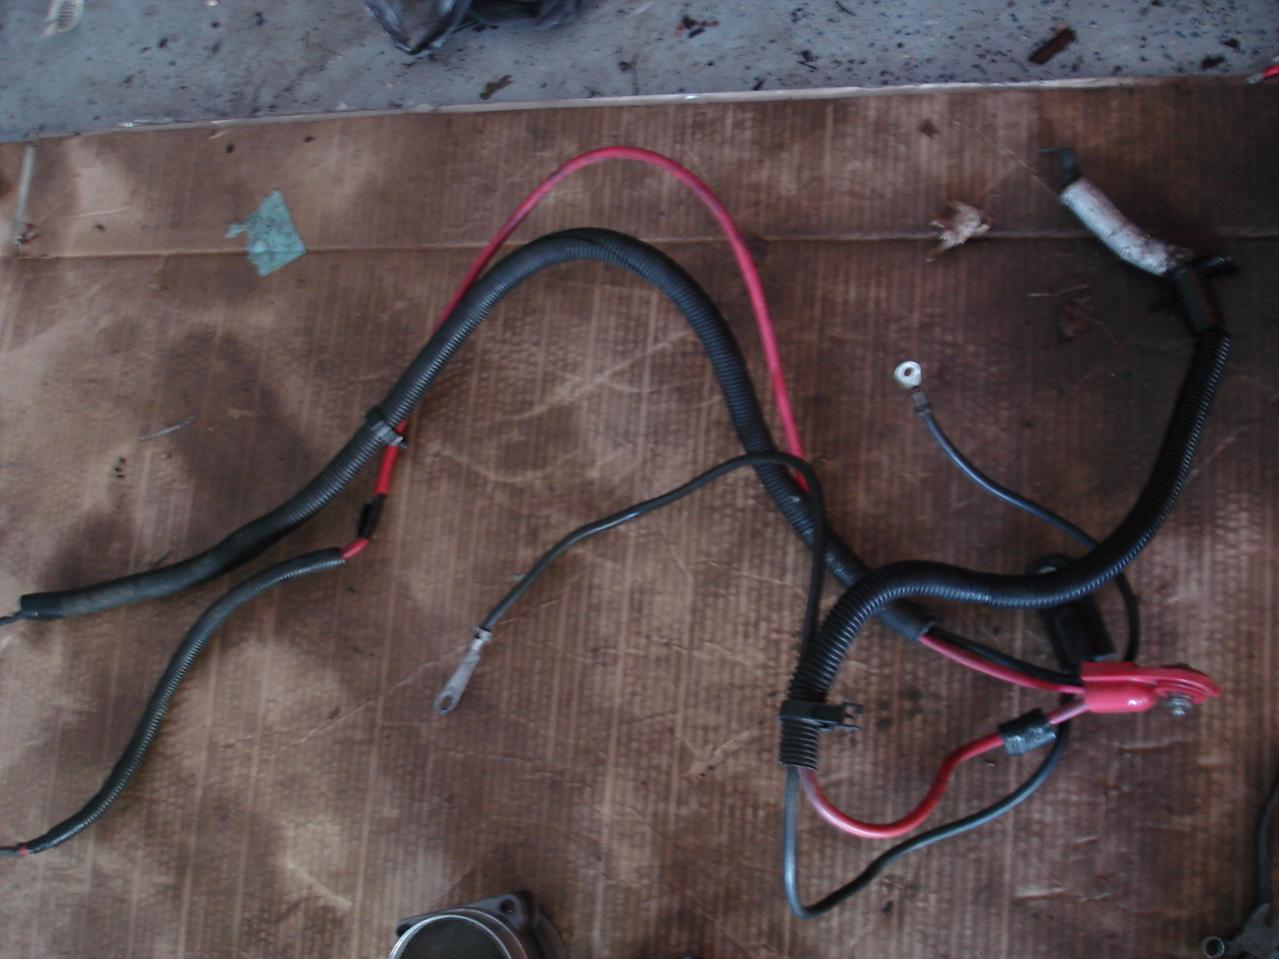 ls1 starter wiring diagram for 3 wire condenser fan motor and lt1 f body battery to alt harness